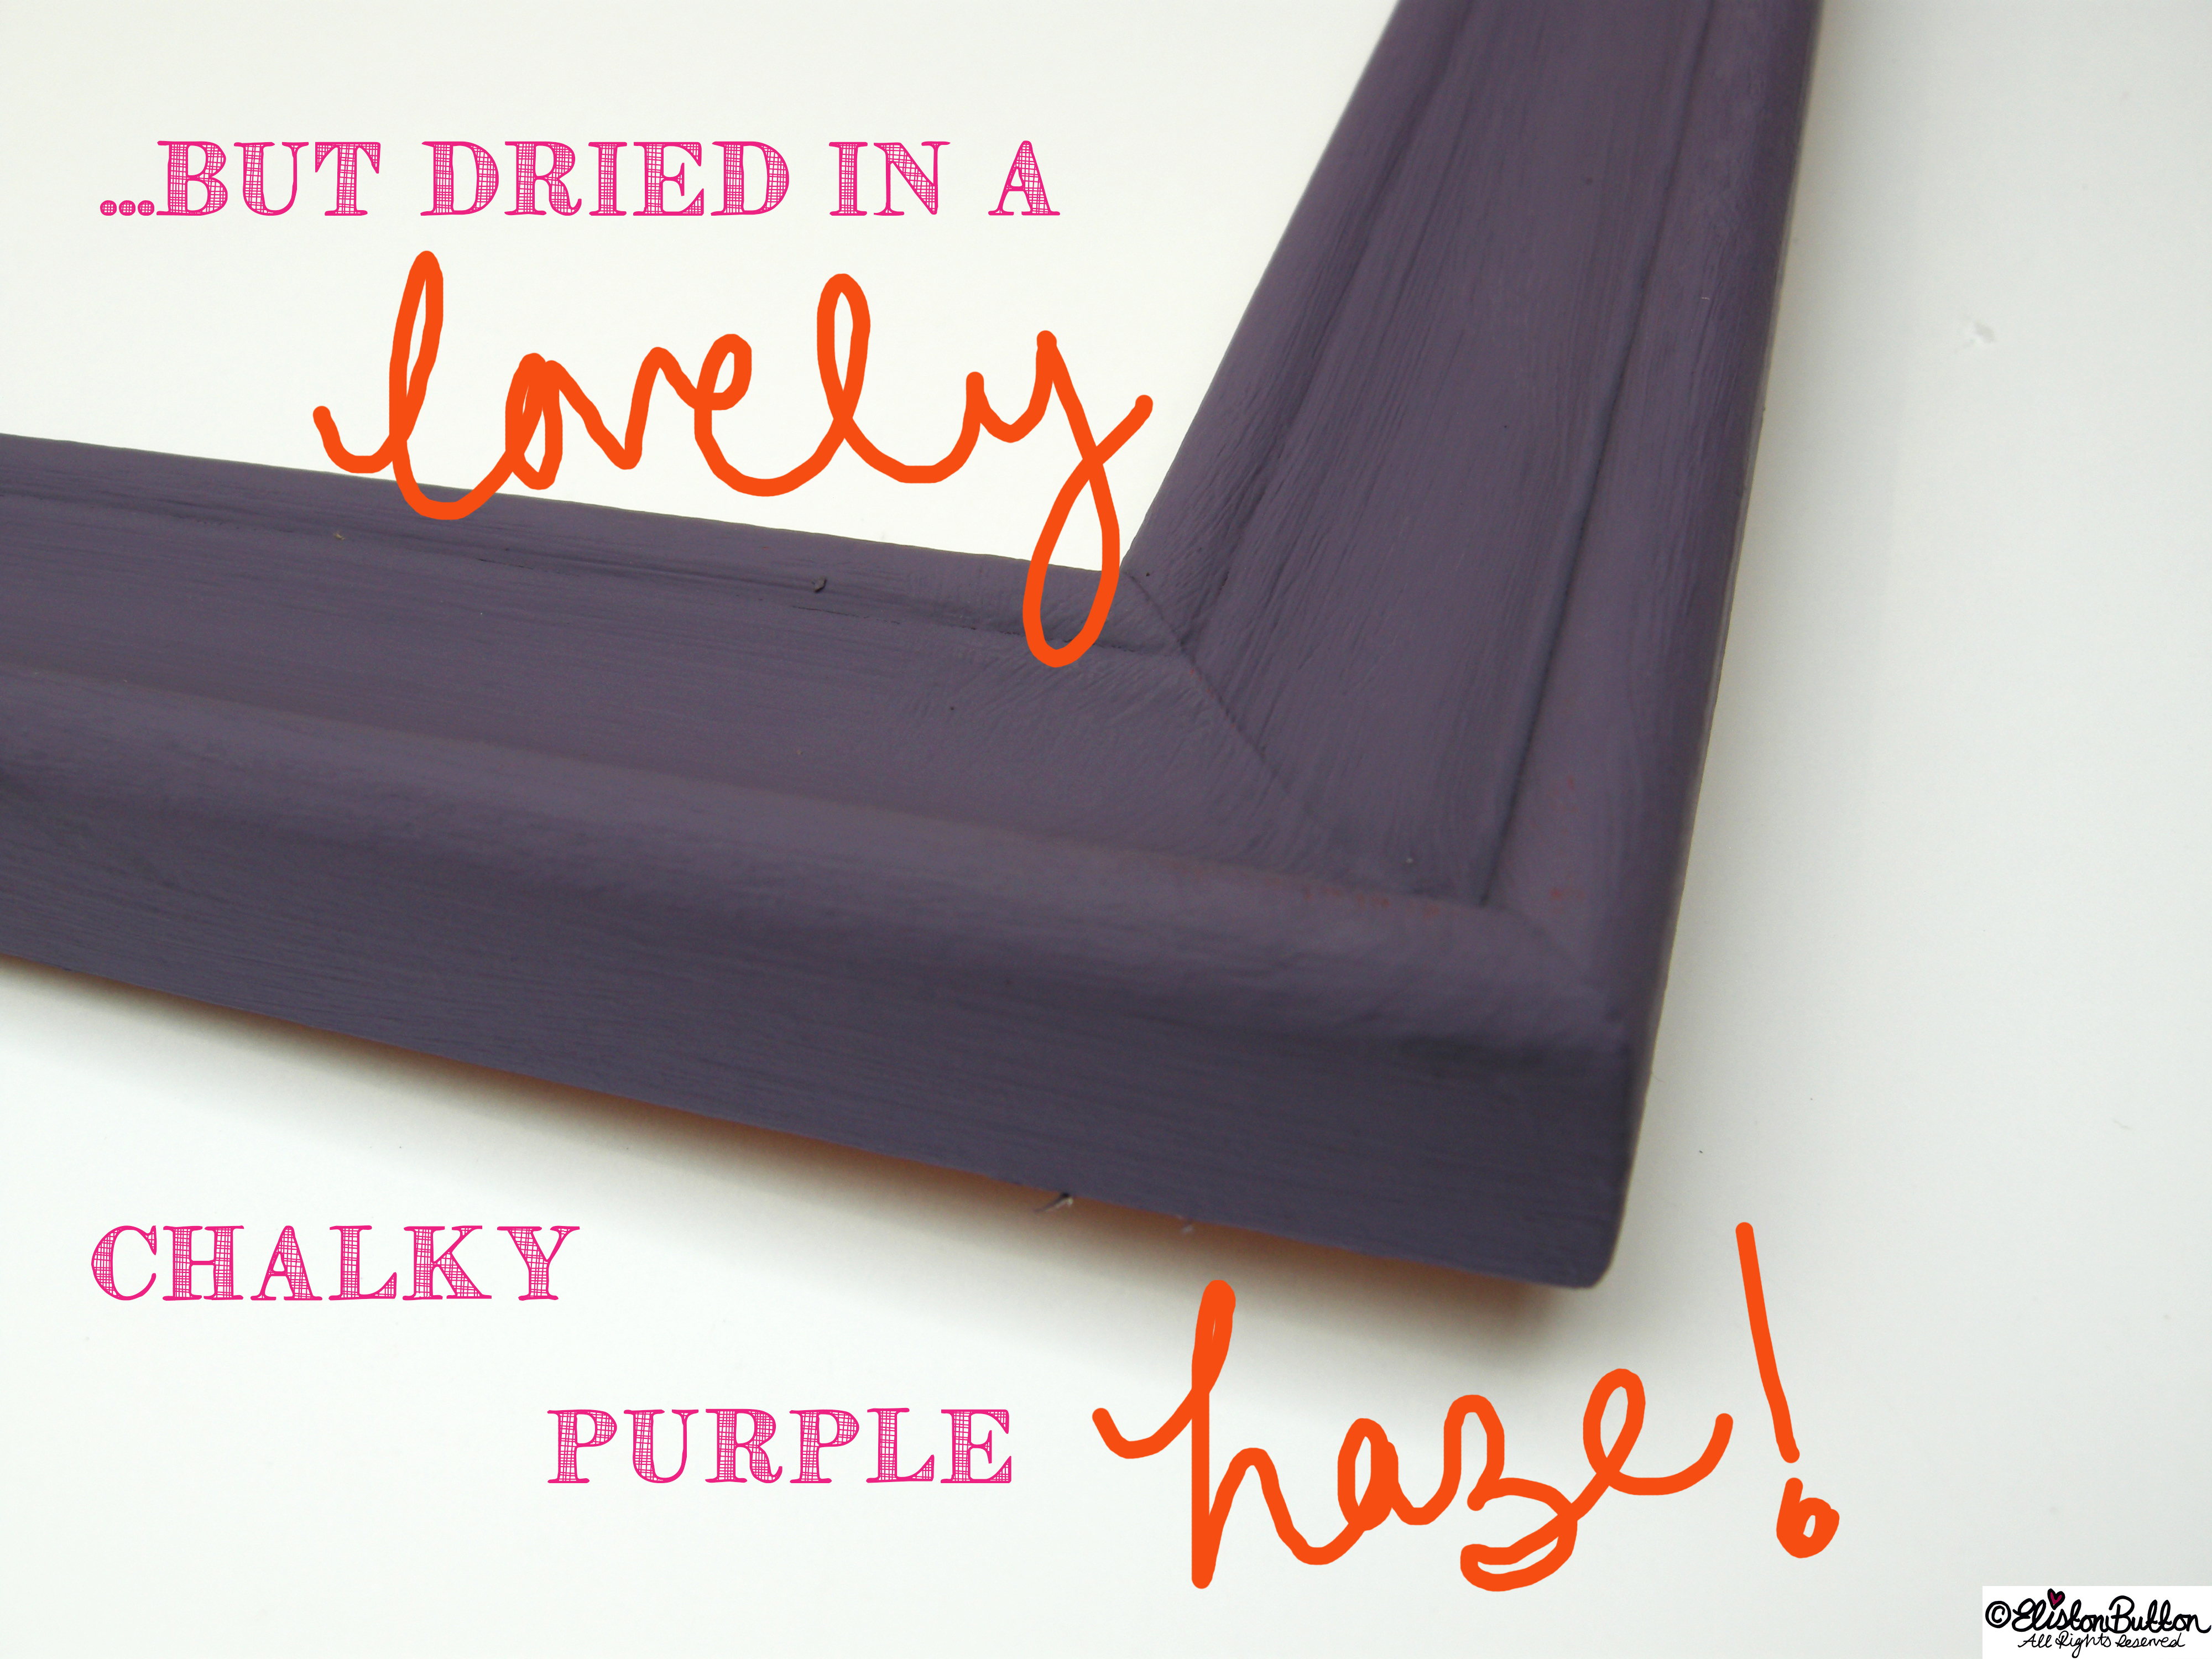 Chalky Purple Painted Frame - Tutorial Tuesday - Tote Bag Wall Art at www.elistonbutton.com - Eliston Button - That Crafty Kid – Art, Design, Craft & Adventure.